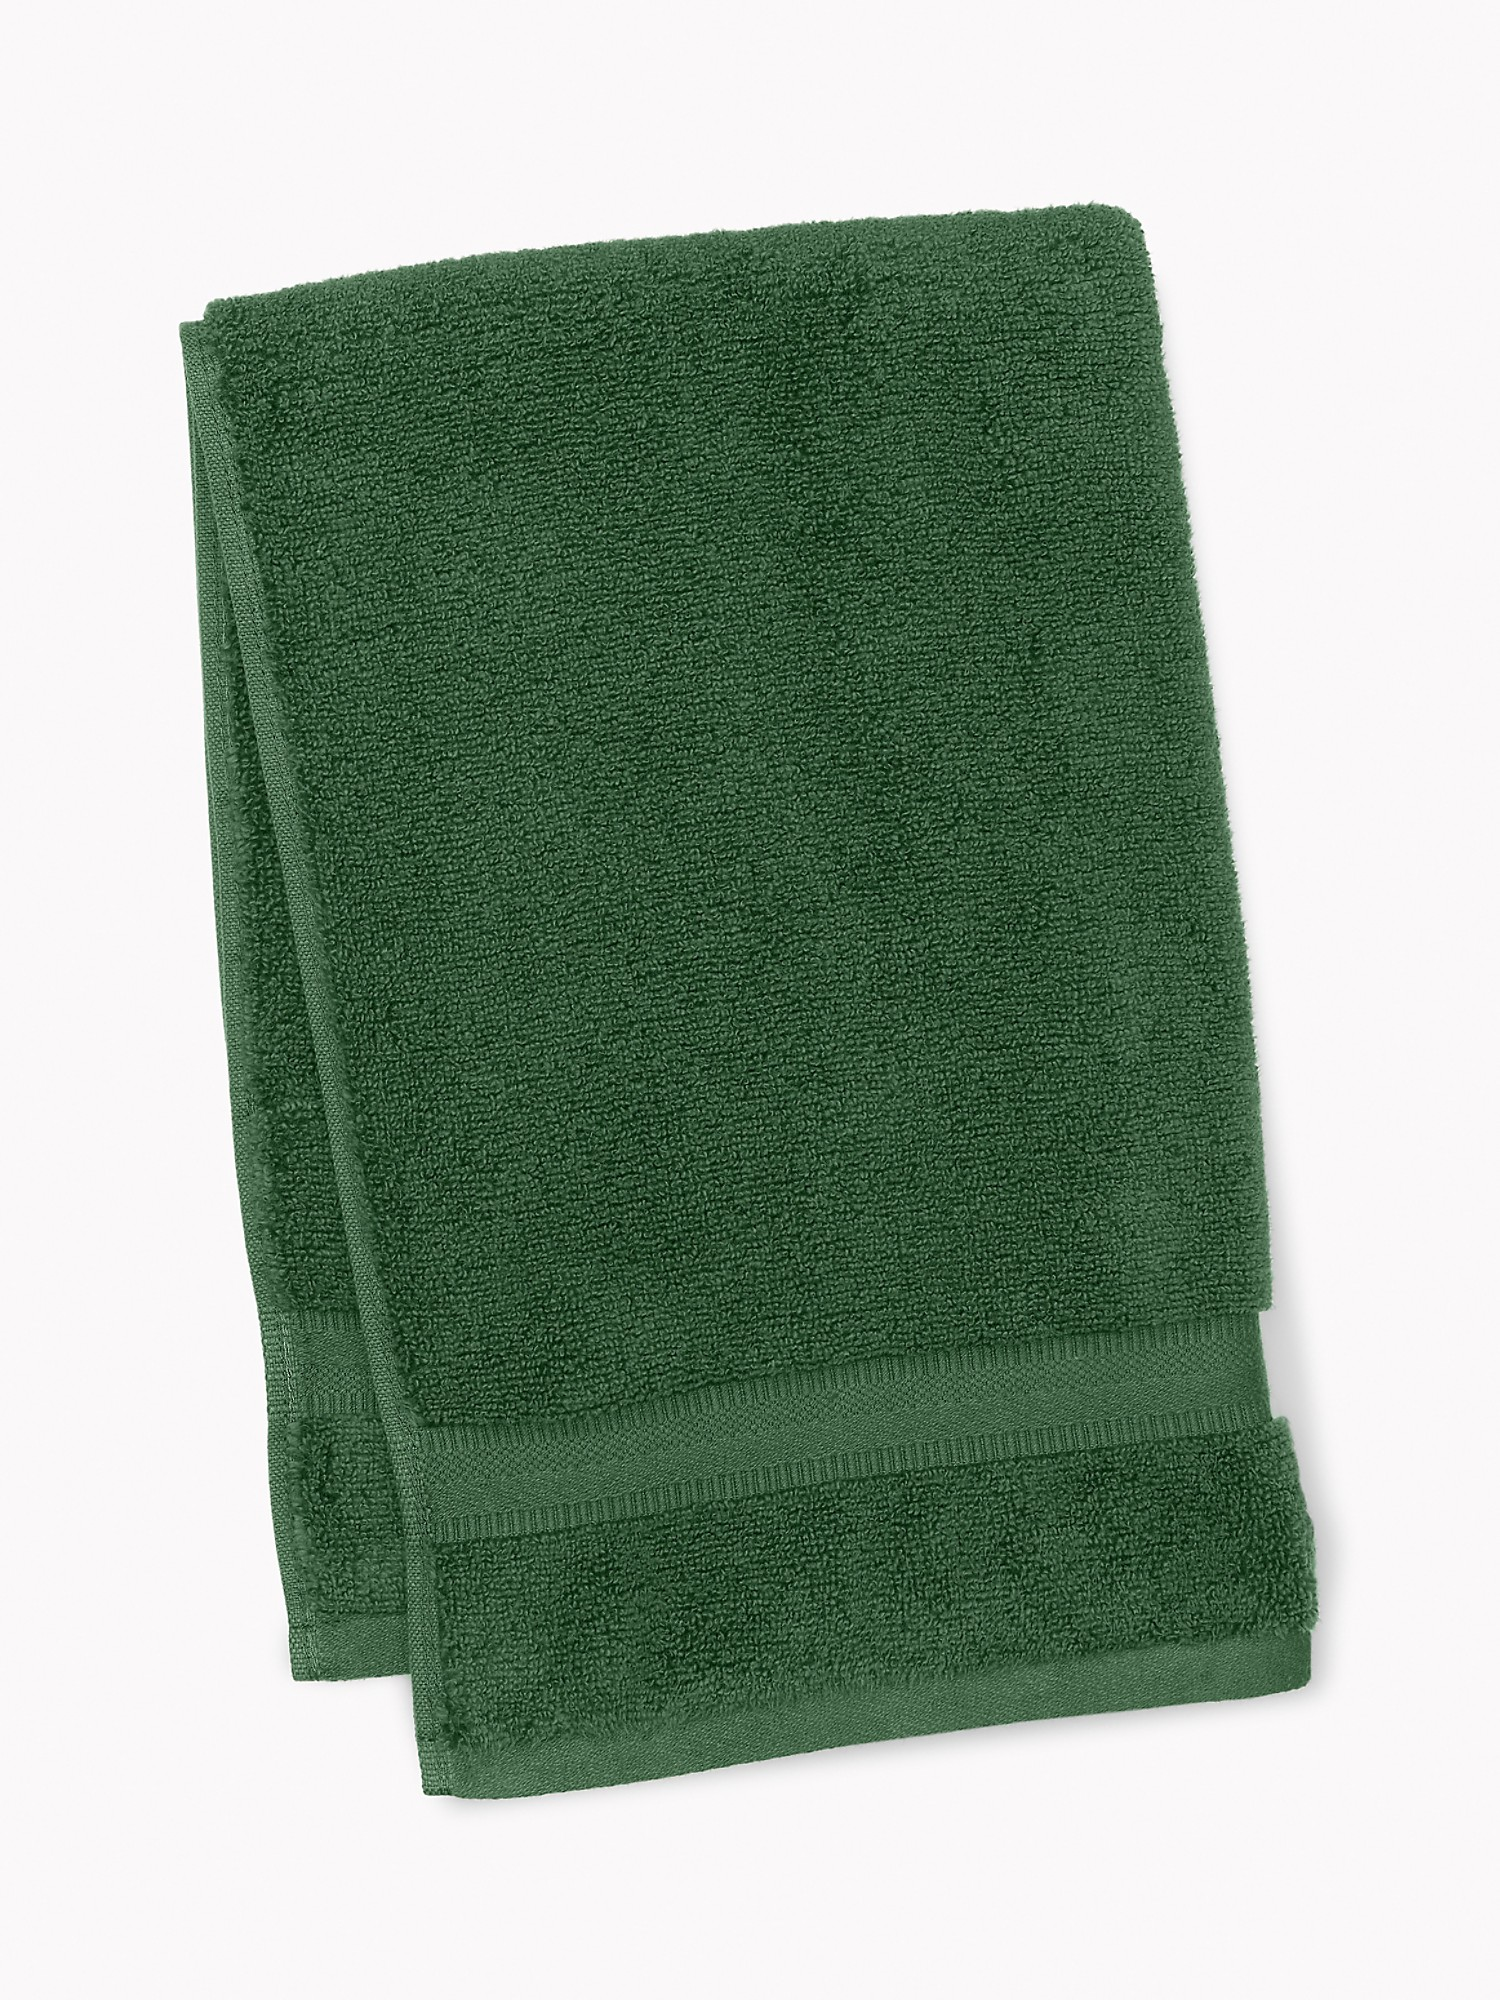 TOMMY HILFIGER Signature Solid Hand Towel in Pine Needle